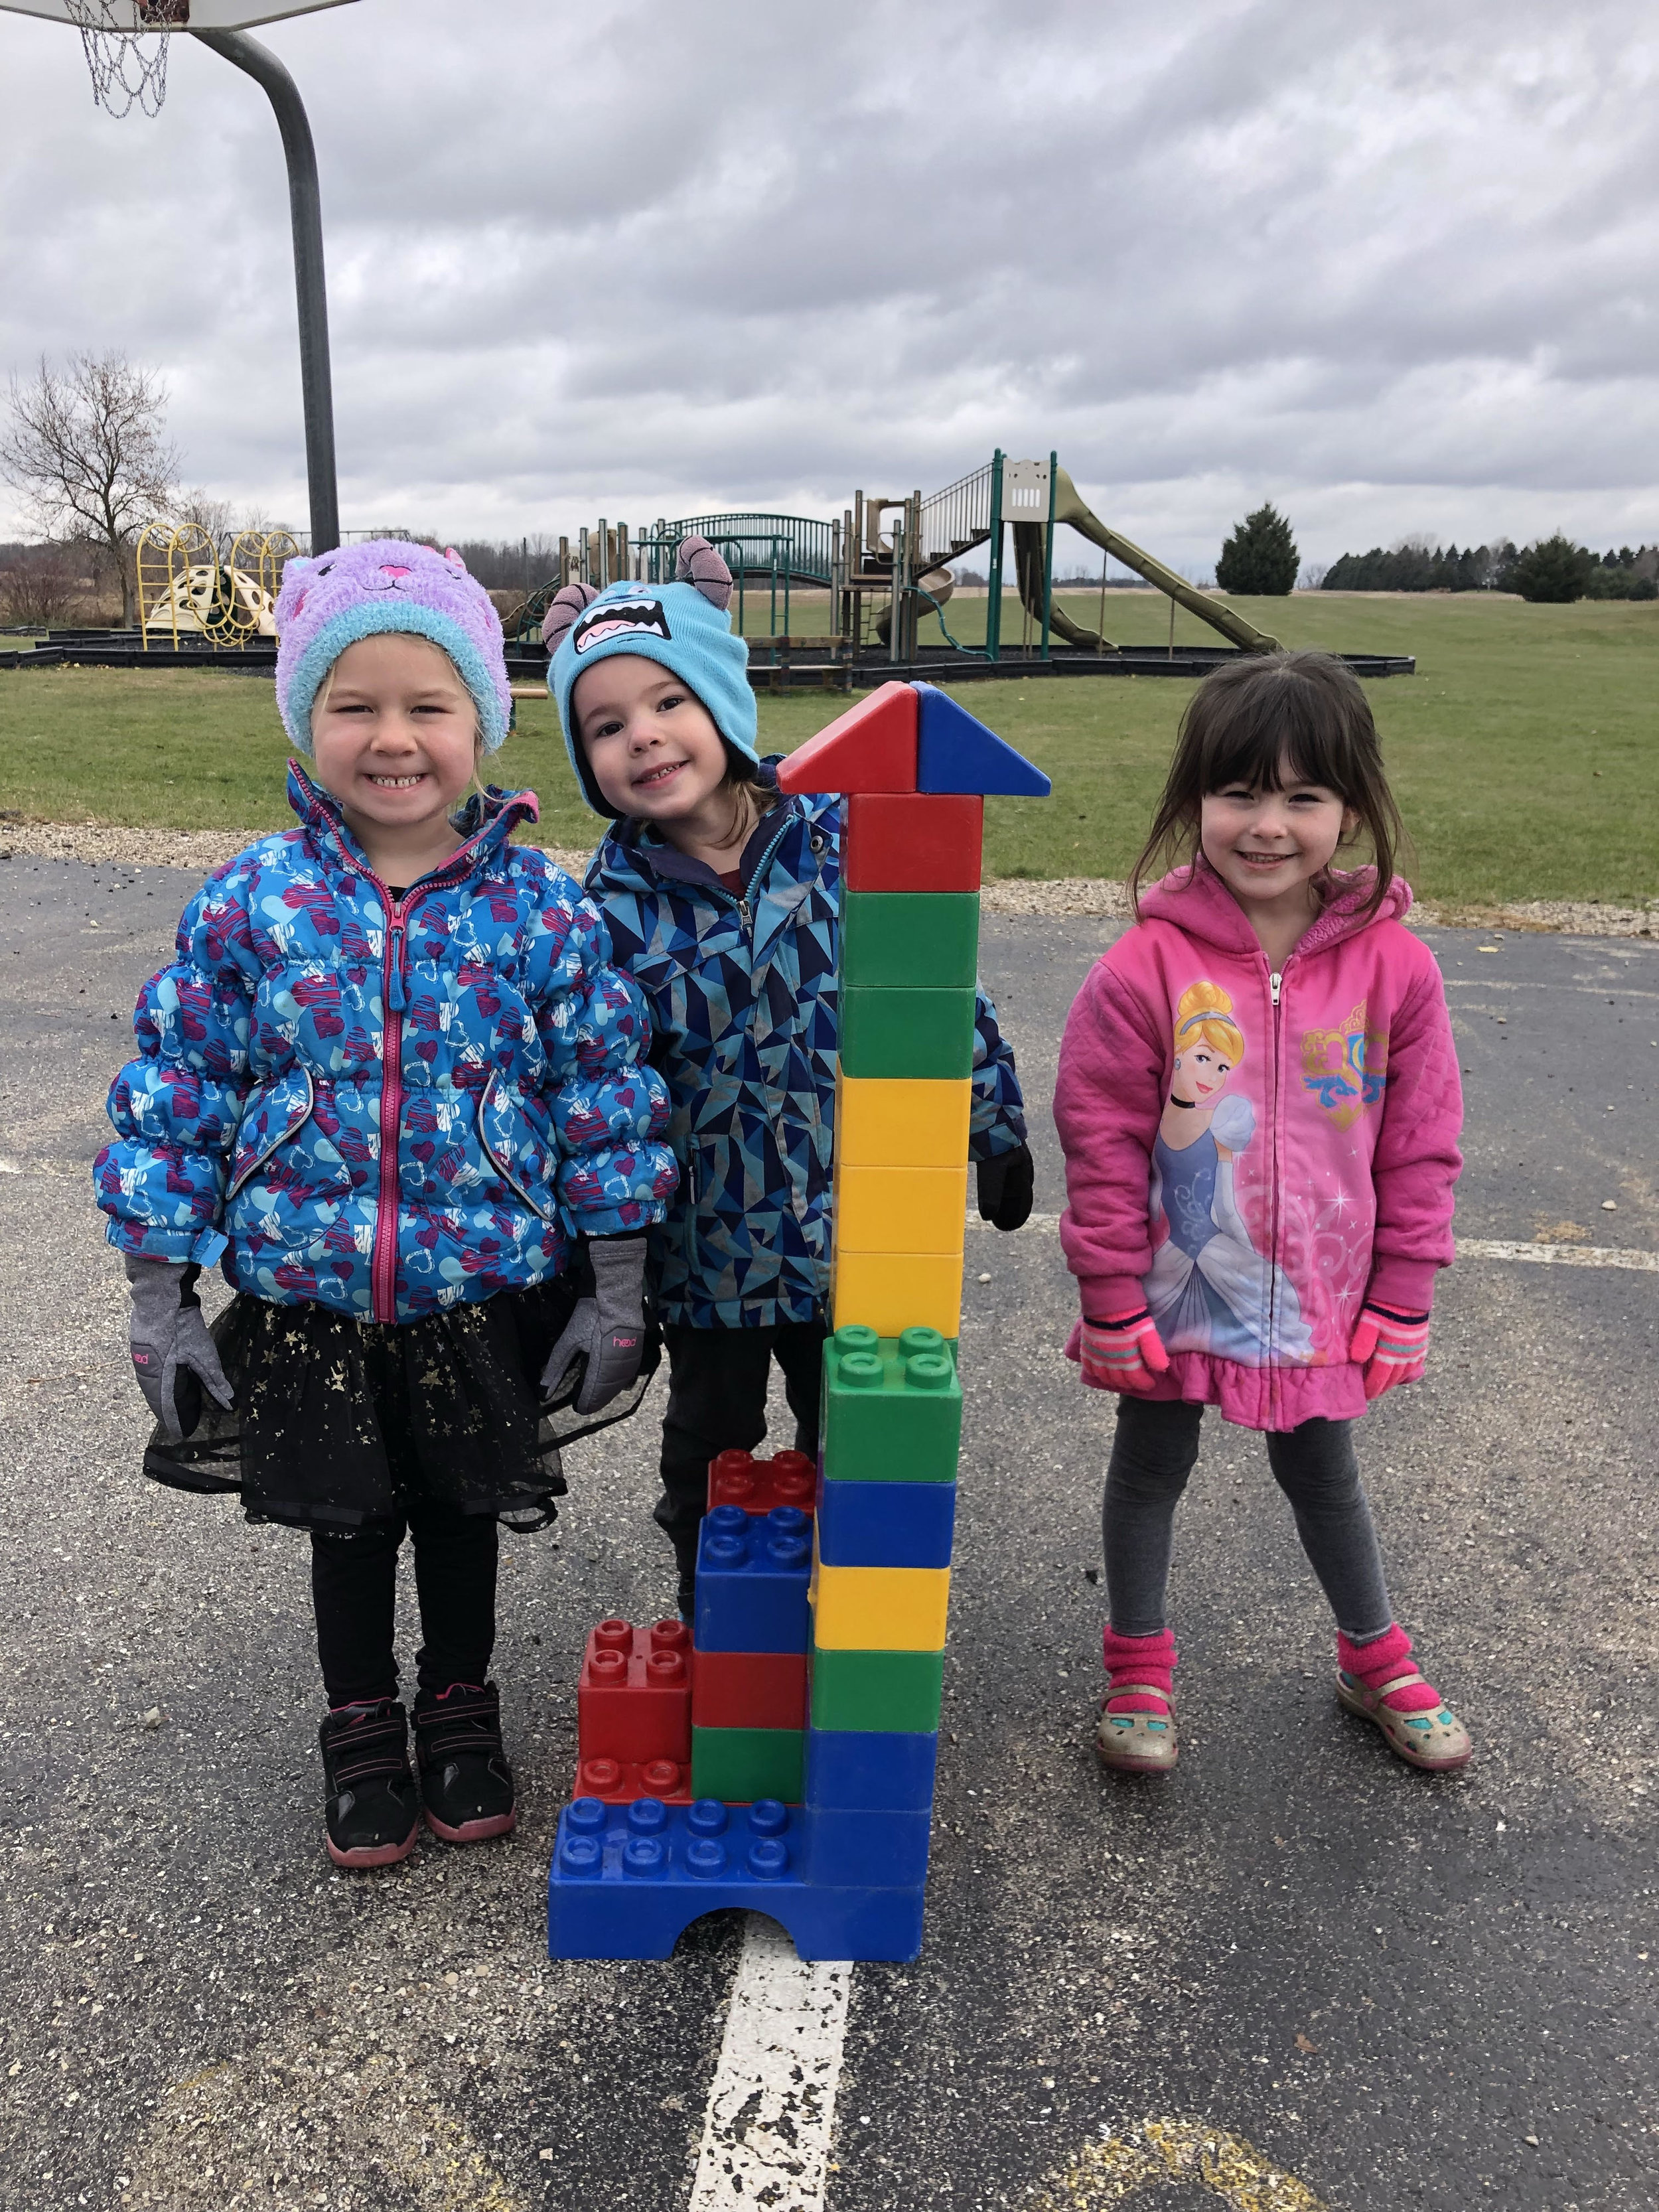 building with blocks at recess